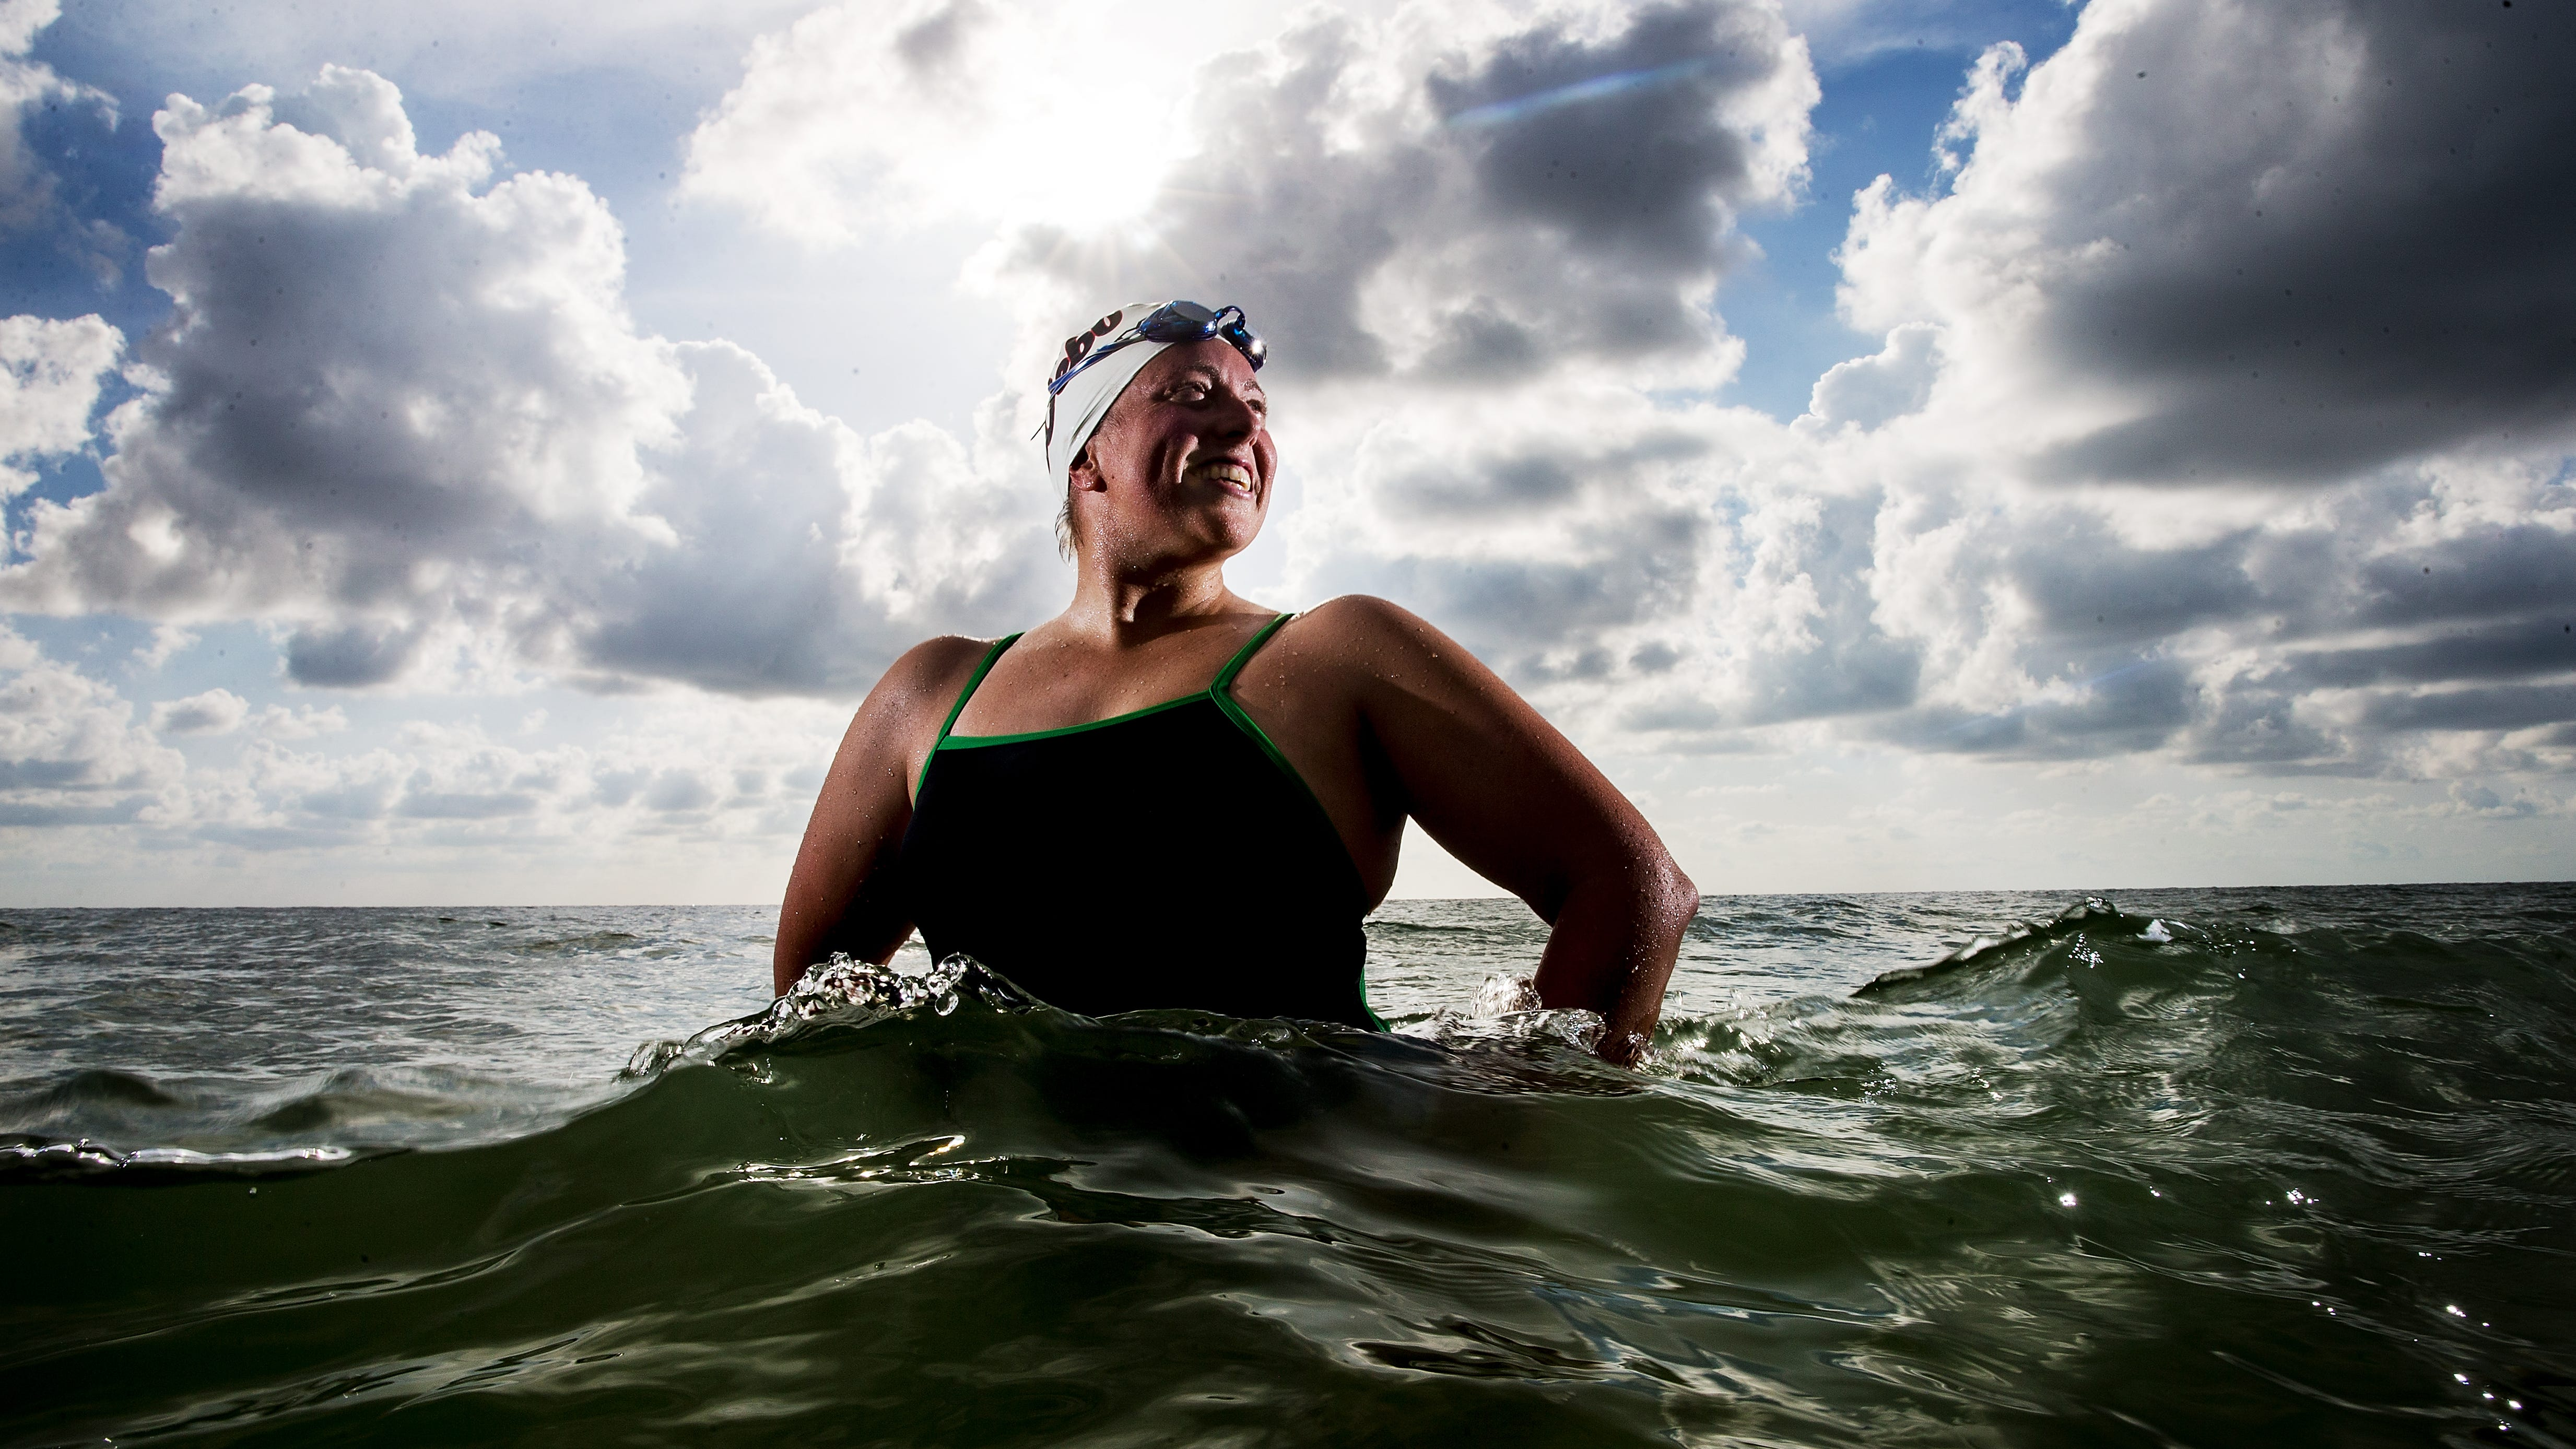 Double the triumph: Fort Myers' Heather Roka swims the English Channel and back in 25 hours